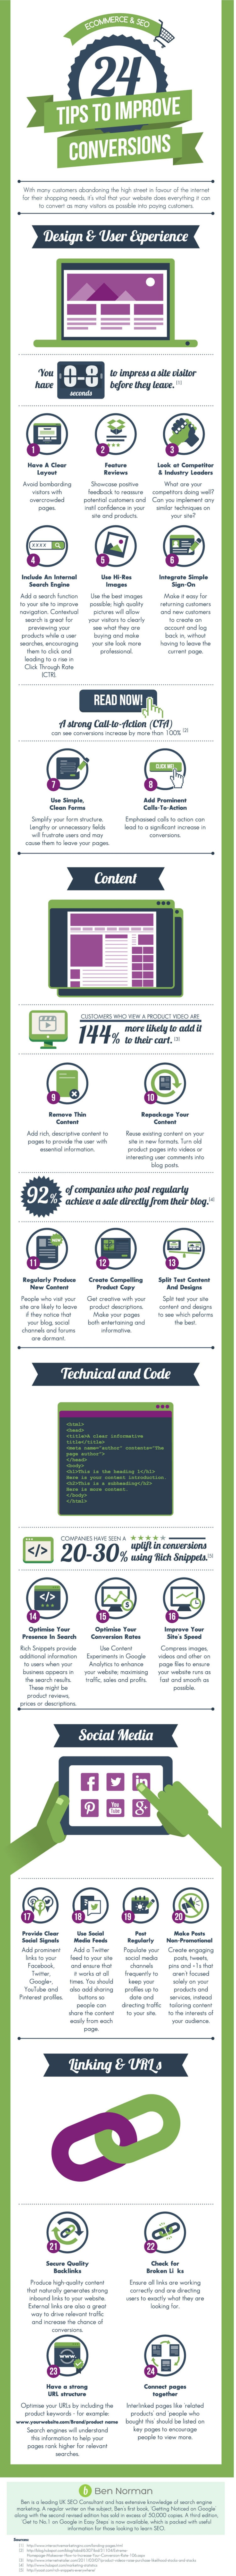 05 24-tips-to-improve-your-conversions_532b12c93694b_w1500